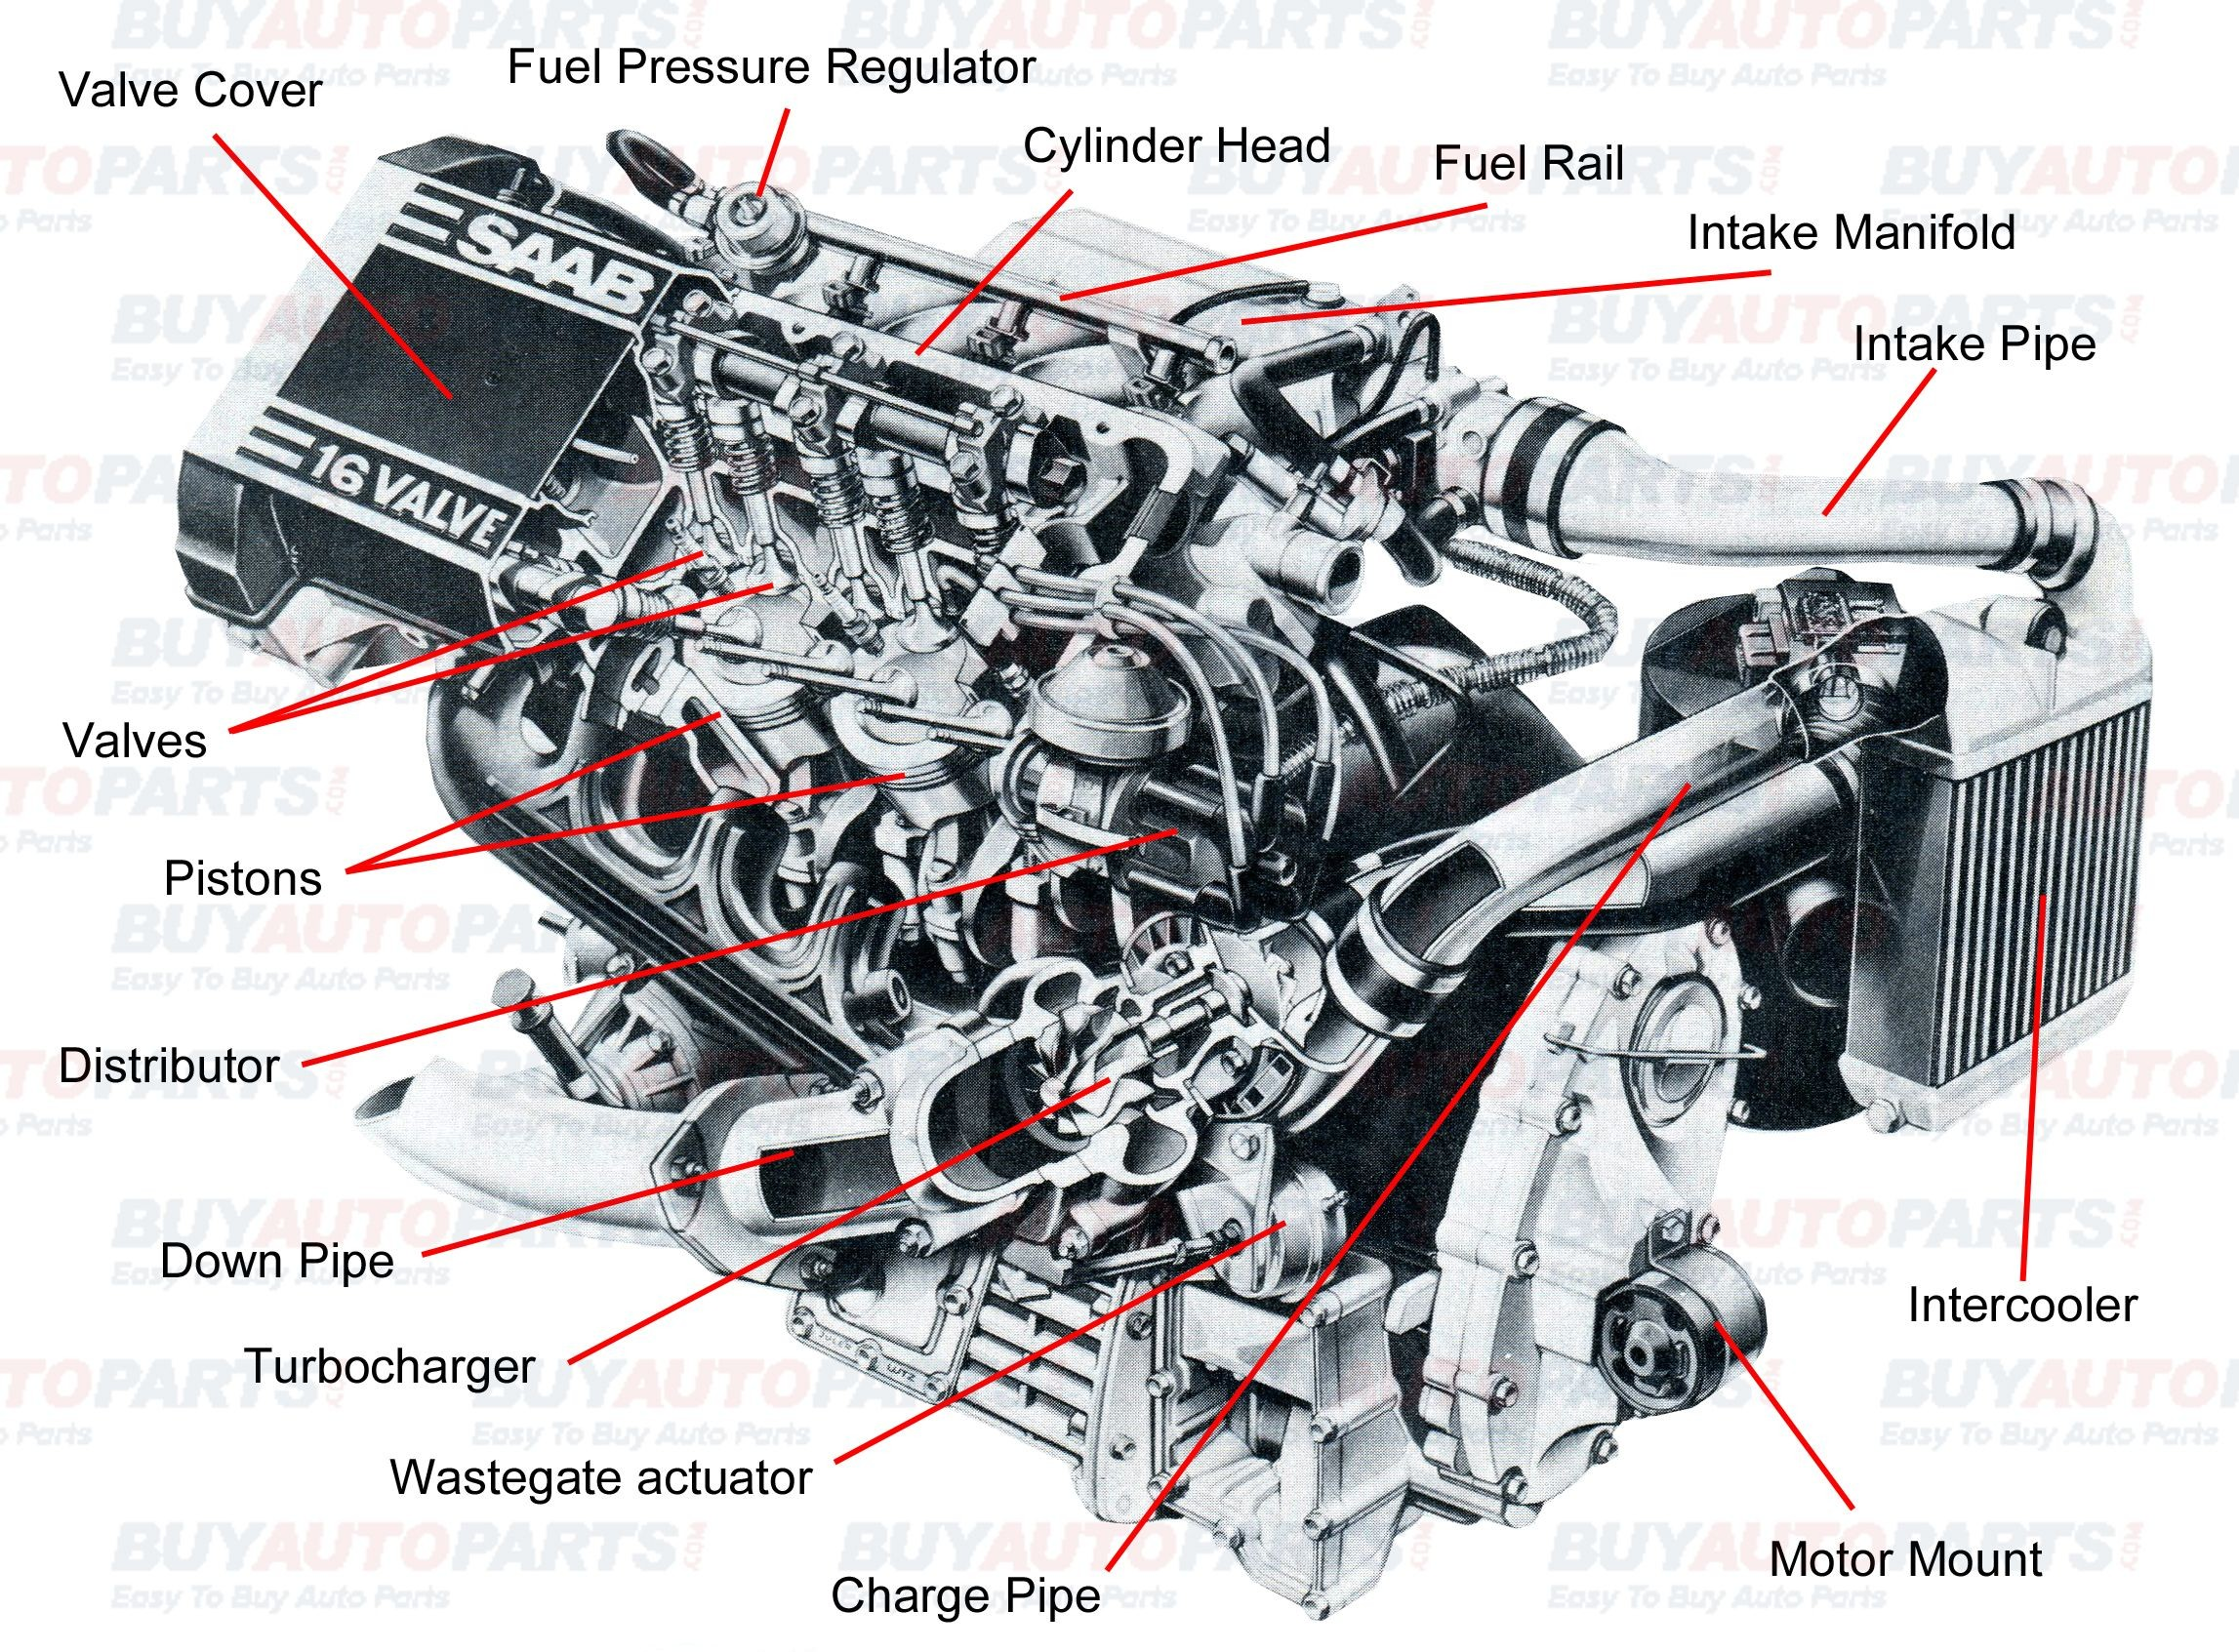 Diagram Of Engine Block Pin by Jimmiejanet Testellamwfz On What Does An Engine with Turbo Of Diagram Of Engine Block